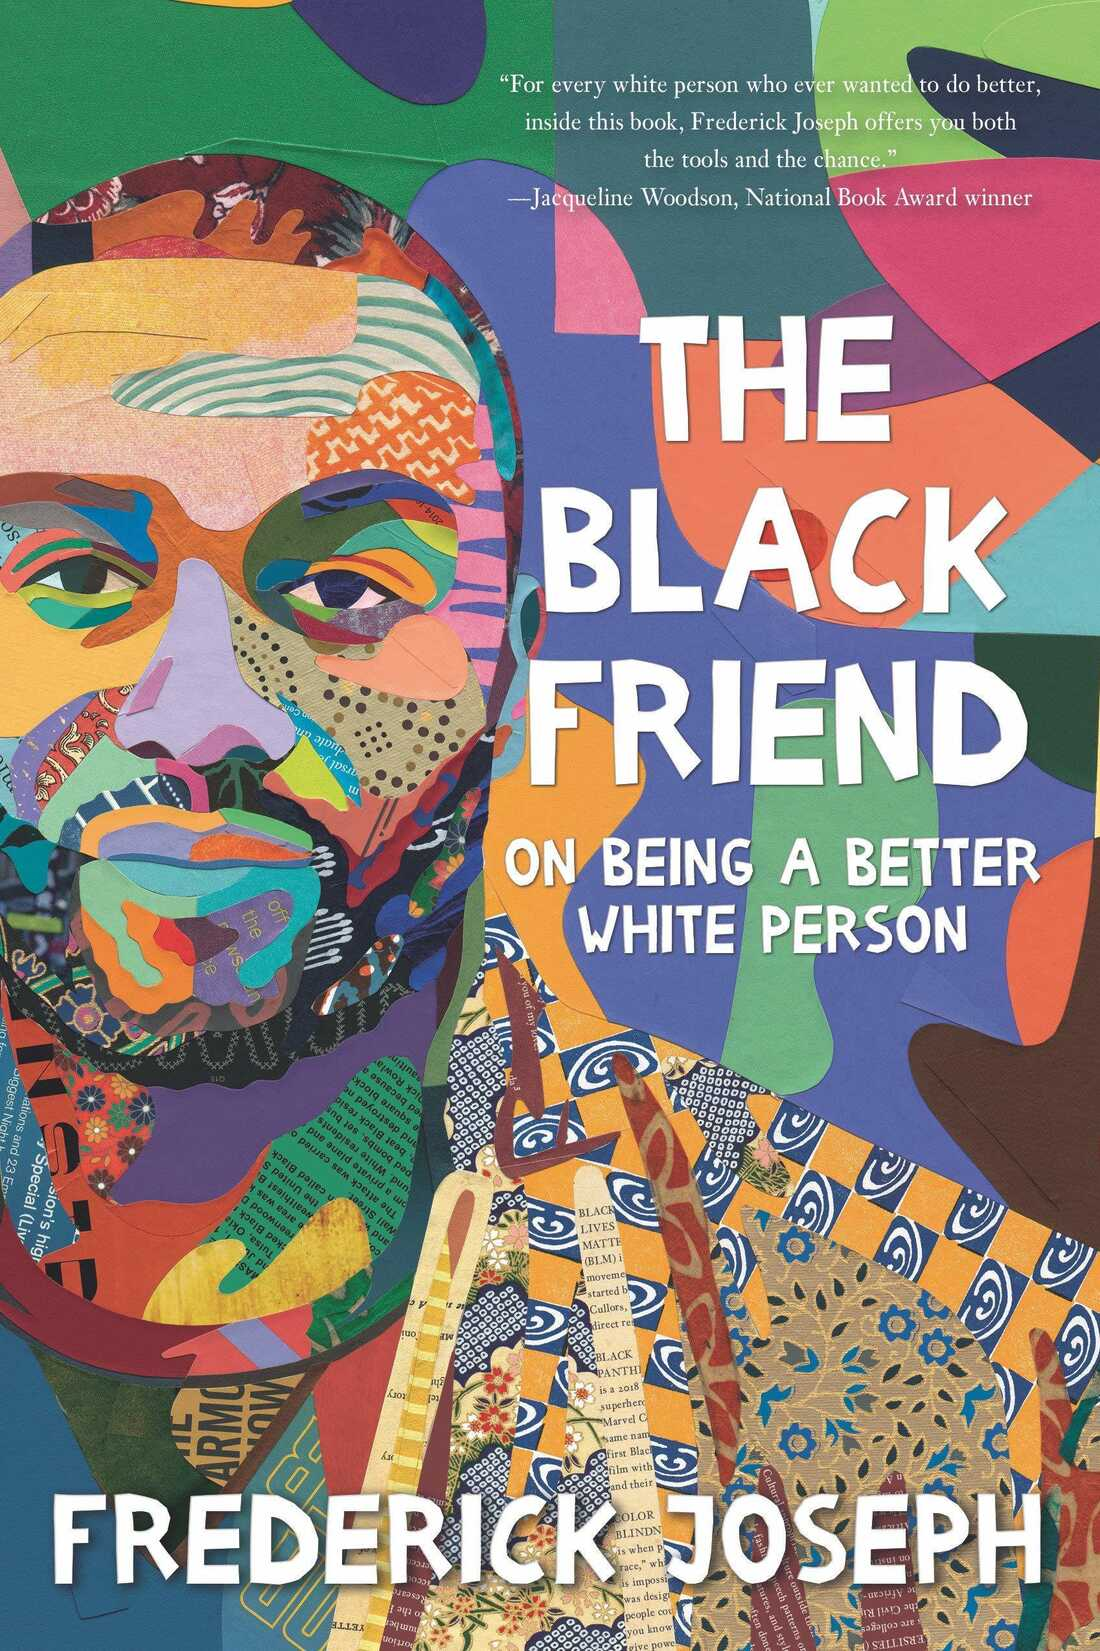 The Black Friend: On Being a Better White Person, by Frederick Joseph